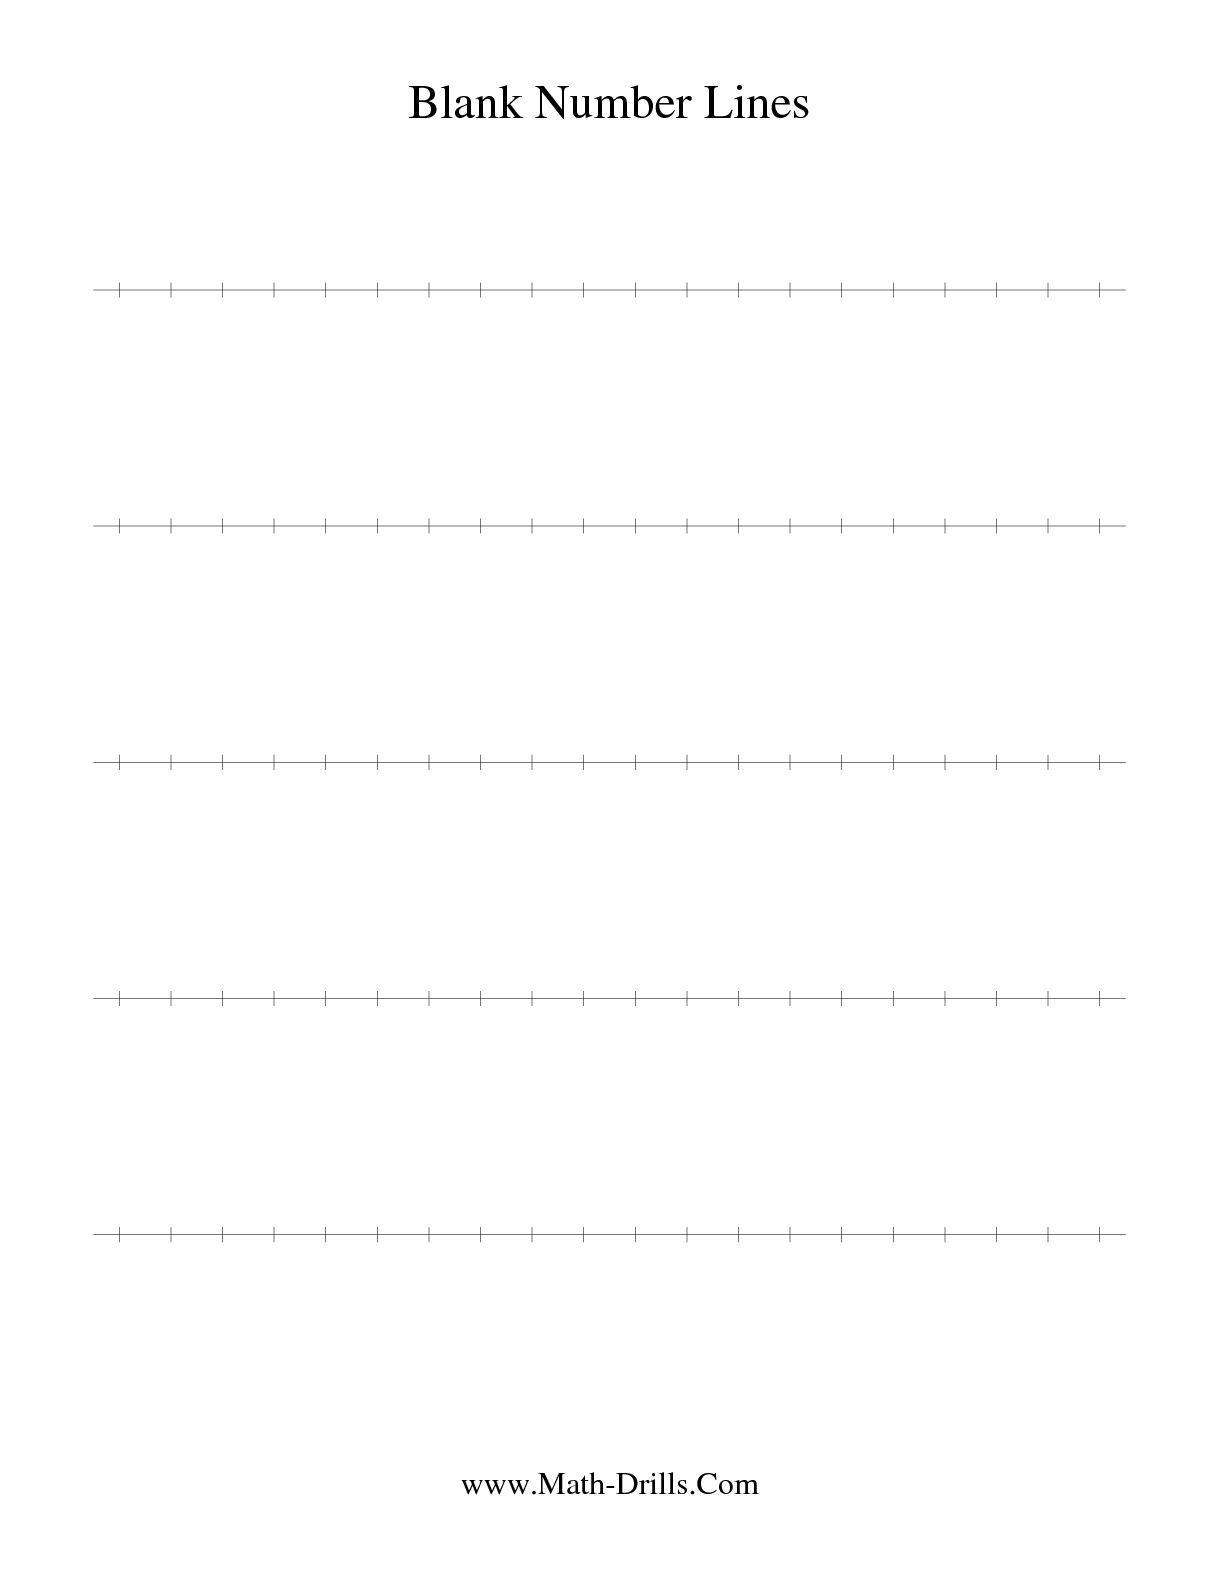 The Blank Number Line Math Worksheet From The Number Sense Worksheet Page At Math Drills